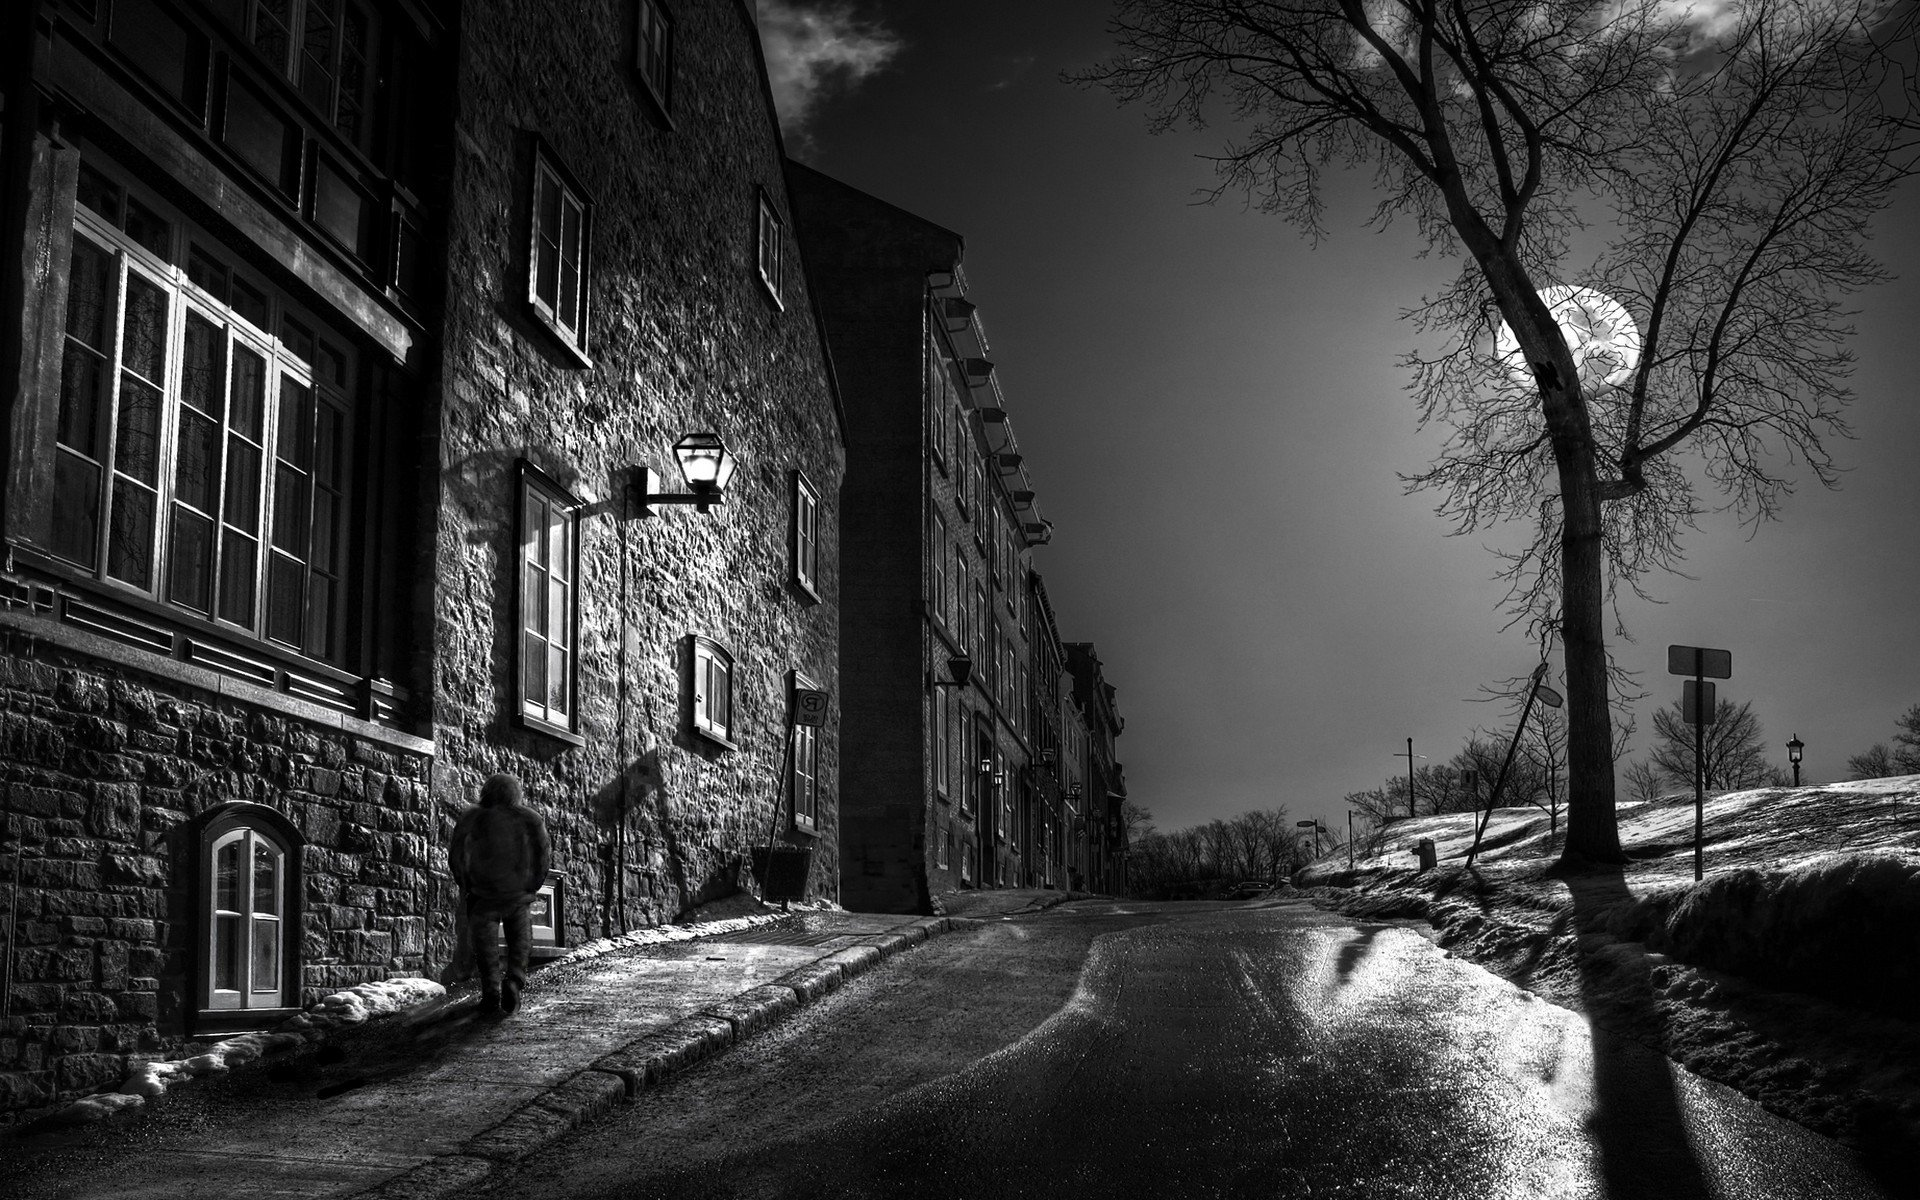 Foreign Girls Wallpaper Moon Trees Street Night Architecture Old Building